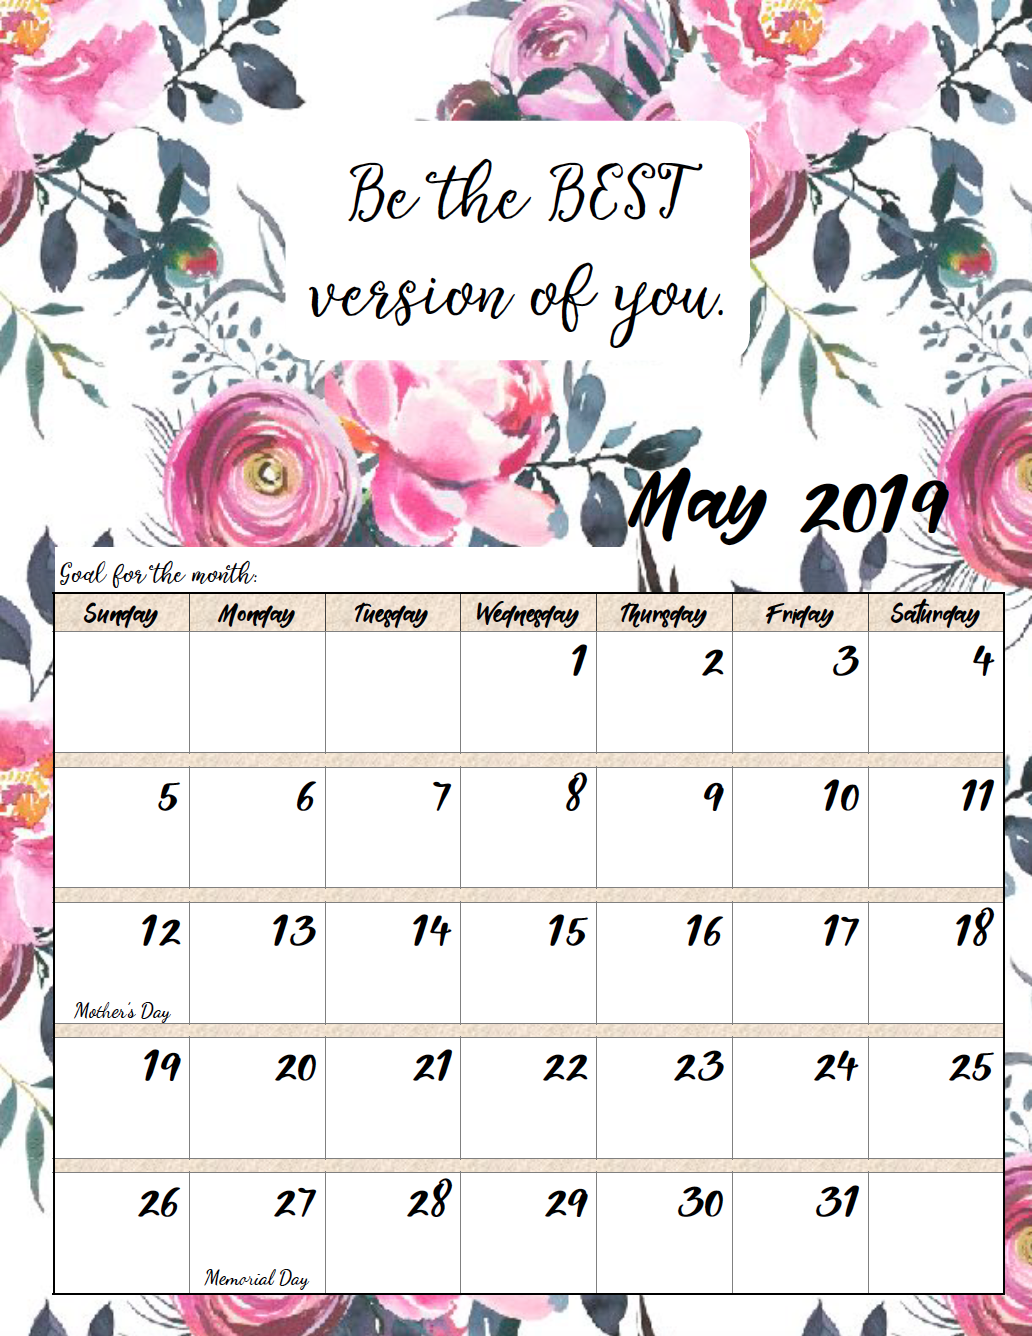 May. FREE Printable 2019 Monthly Motivational Calendars. Space for setting goals, different motivational quote each month, holidays marked. #free #freeprintable #printable #calendar #motivation